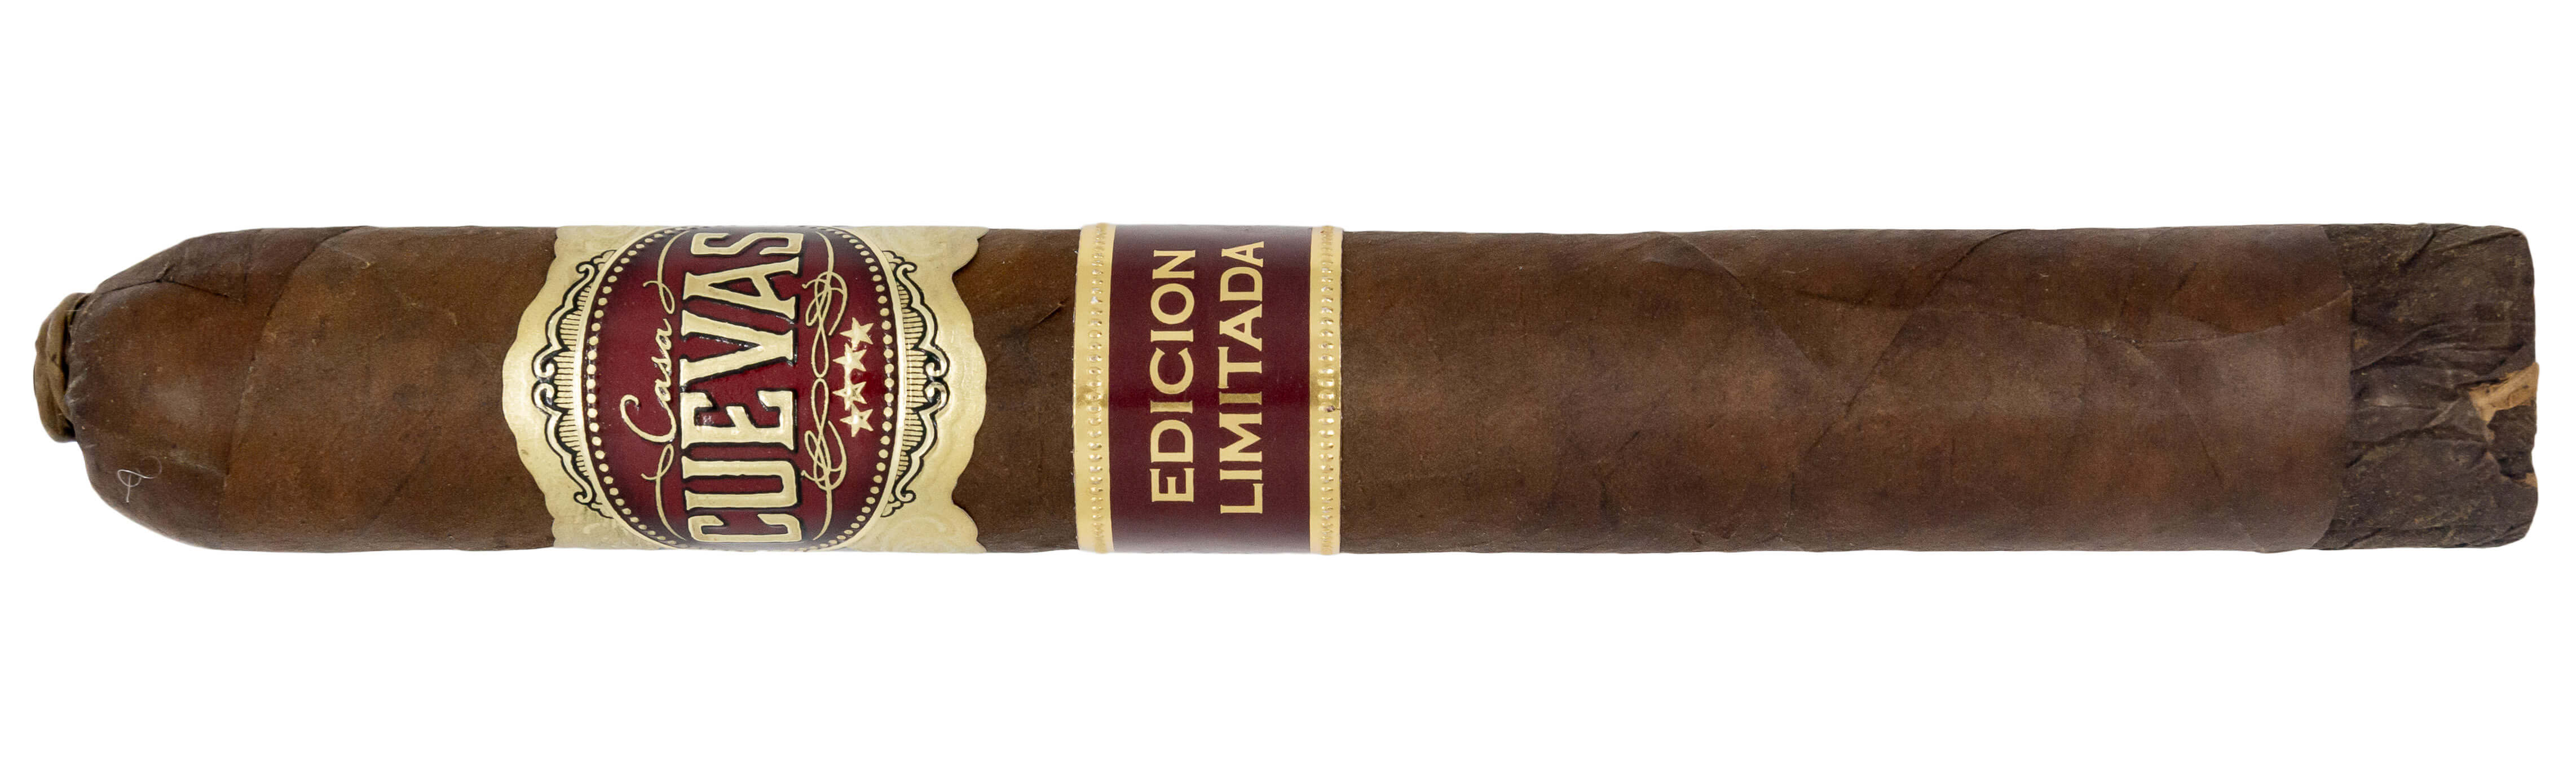 Blind Cigar Review: Casa Cuevas | La Mandarria